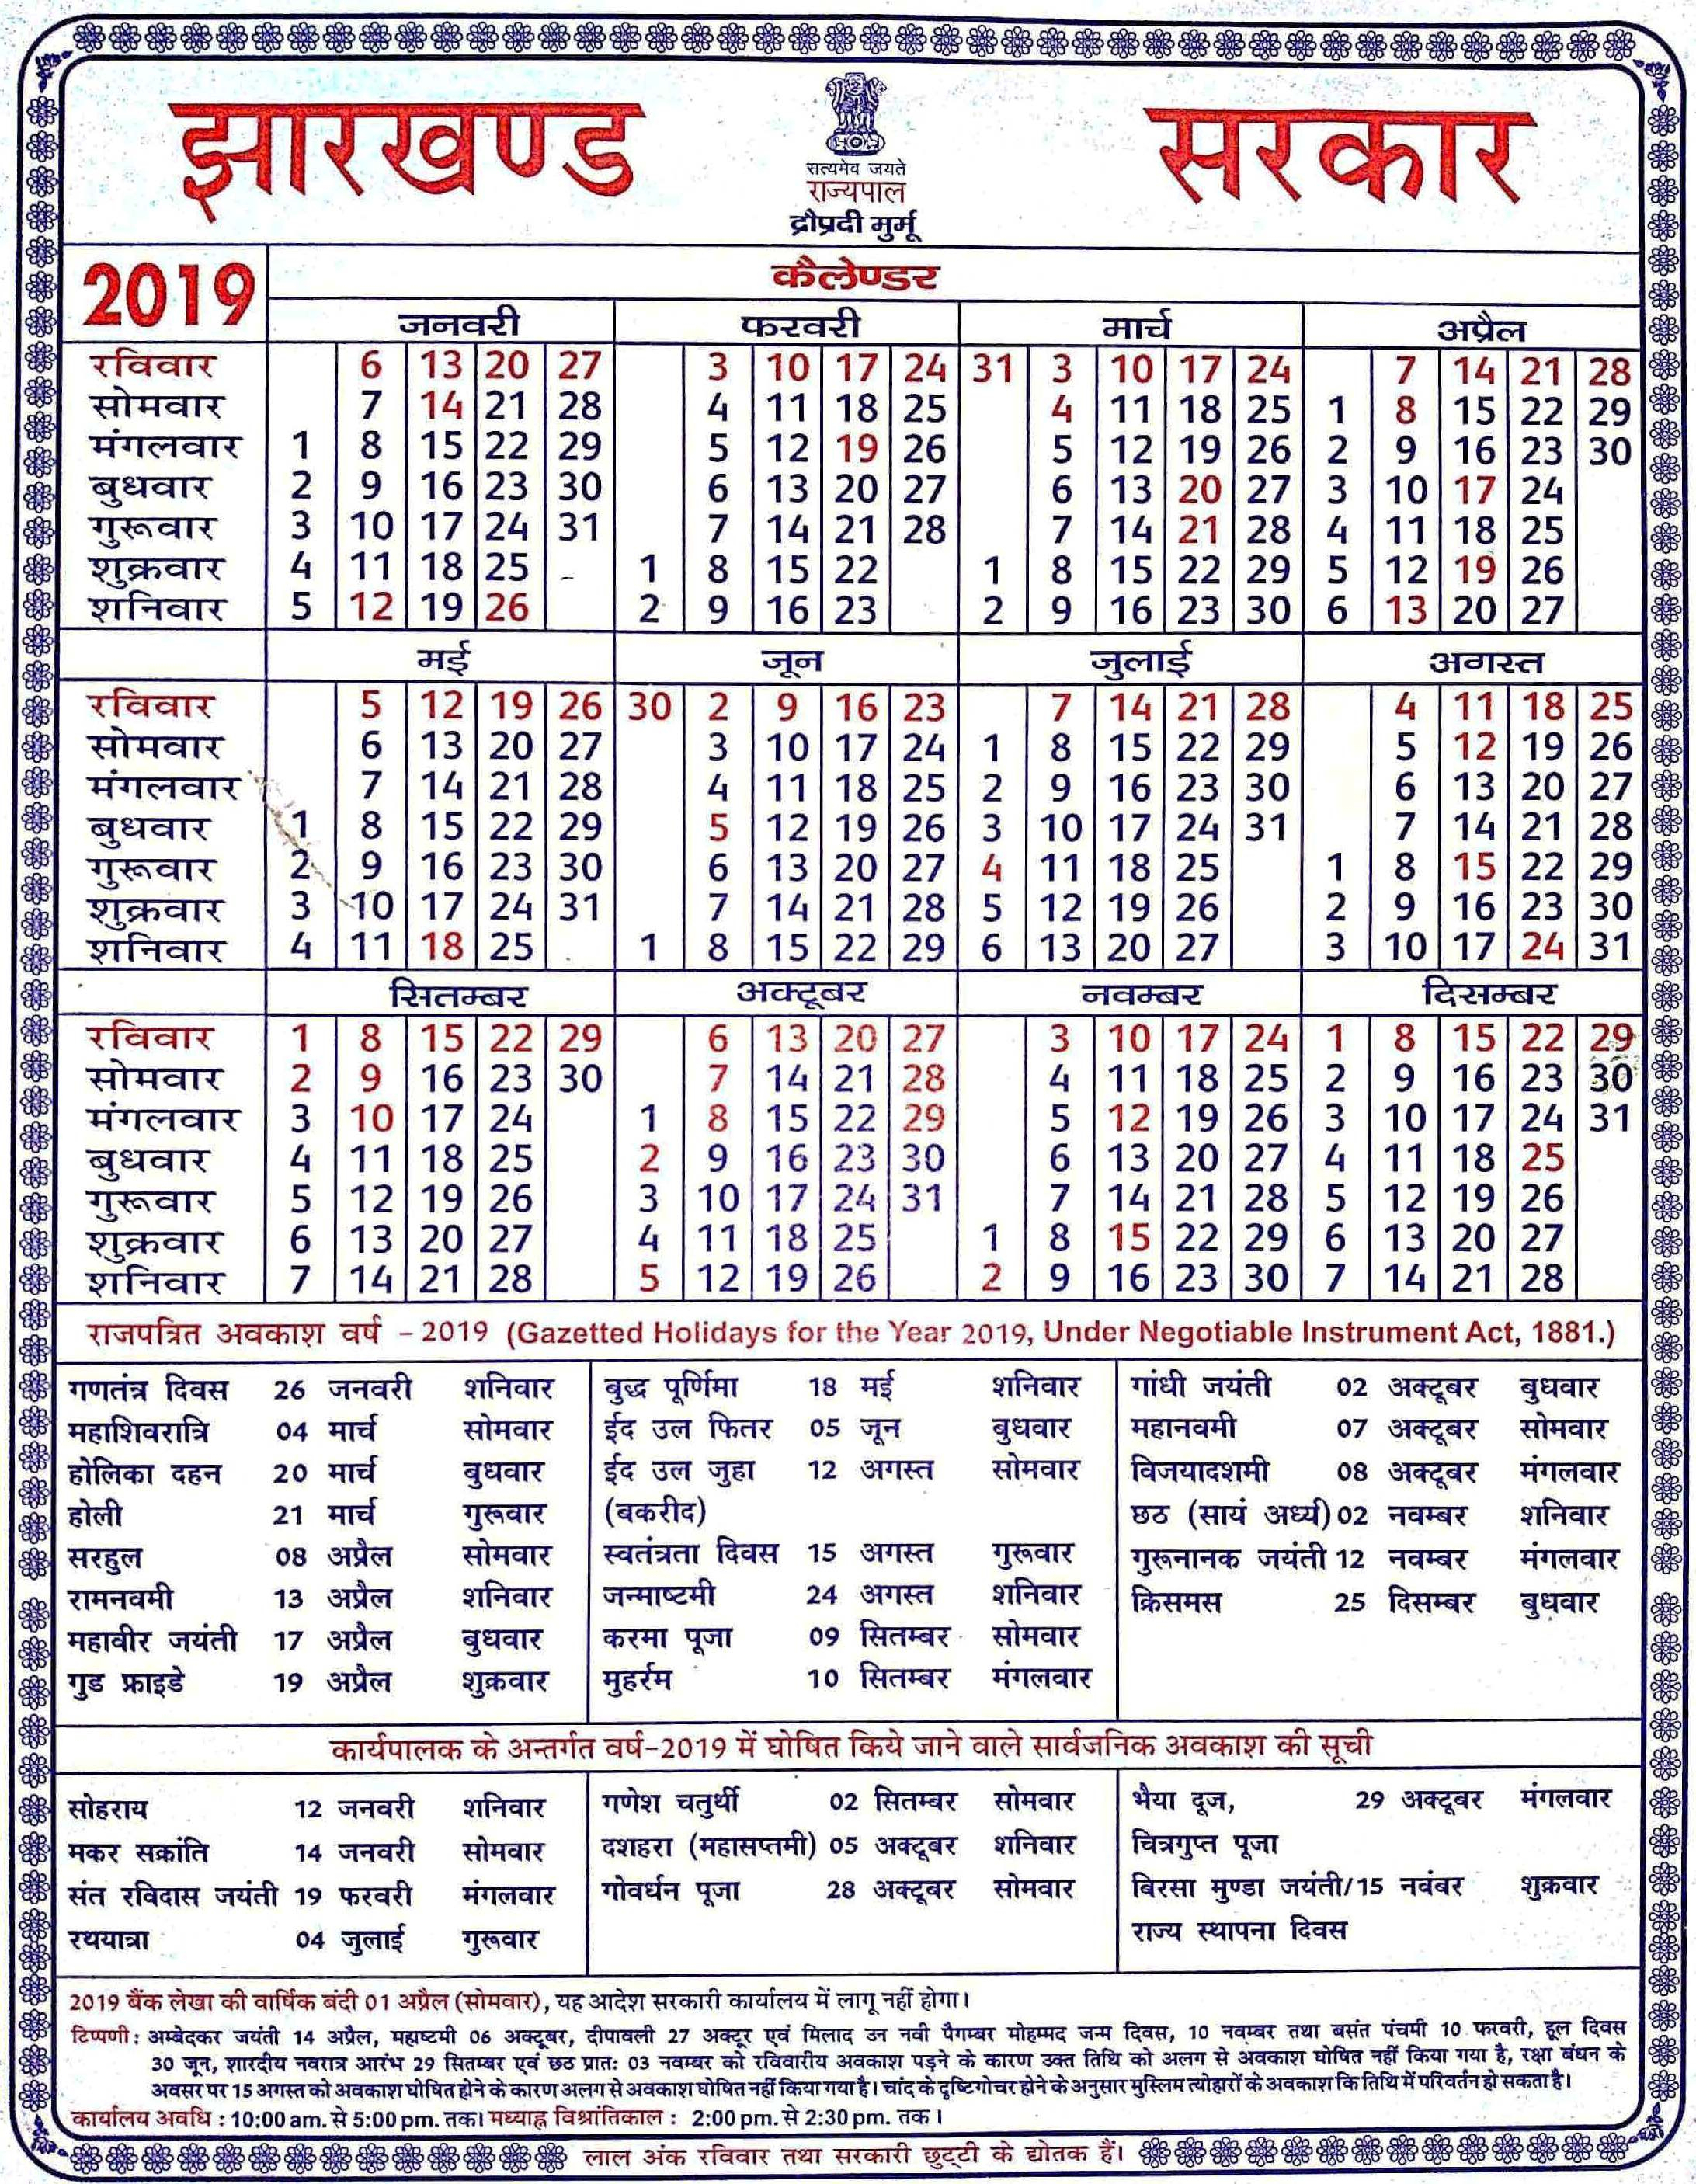 District Giridih, Government Of Jharkhand | City Of Hills intended for Govt Of Bihar Calendar 2020